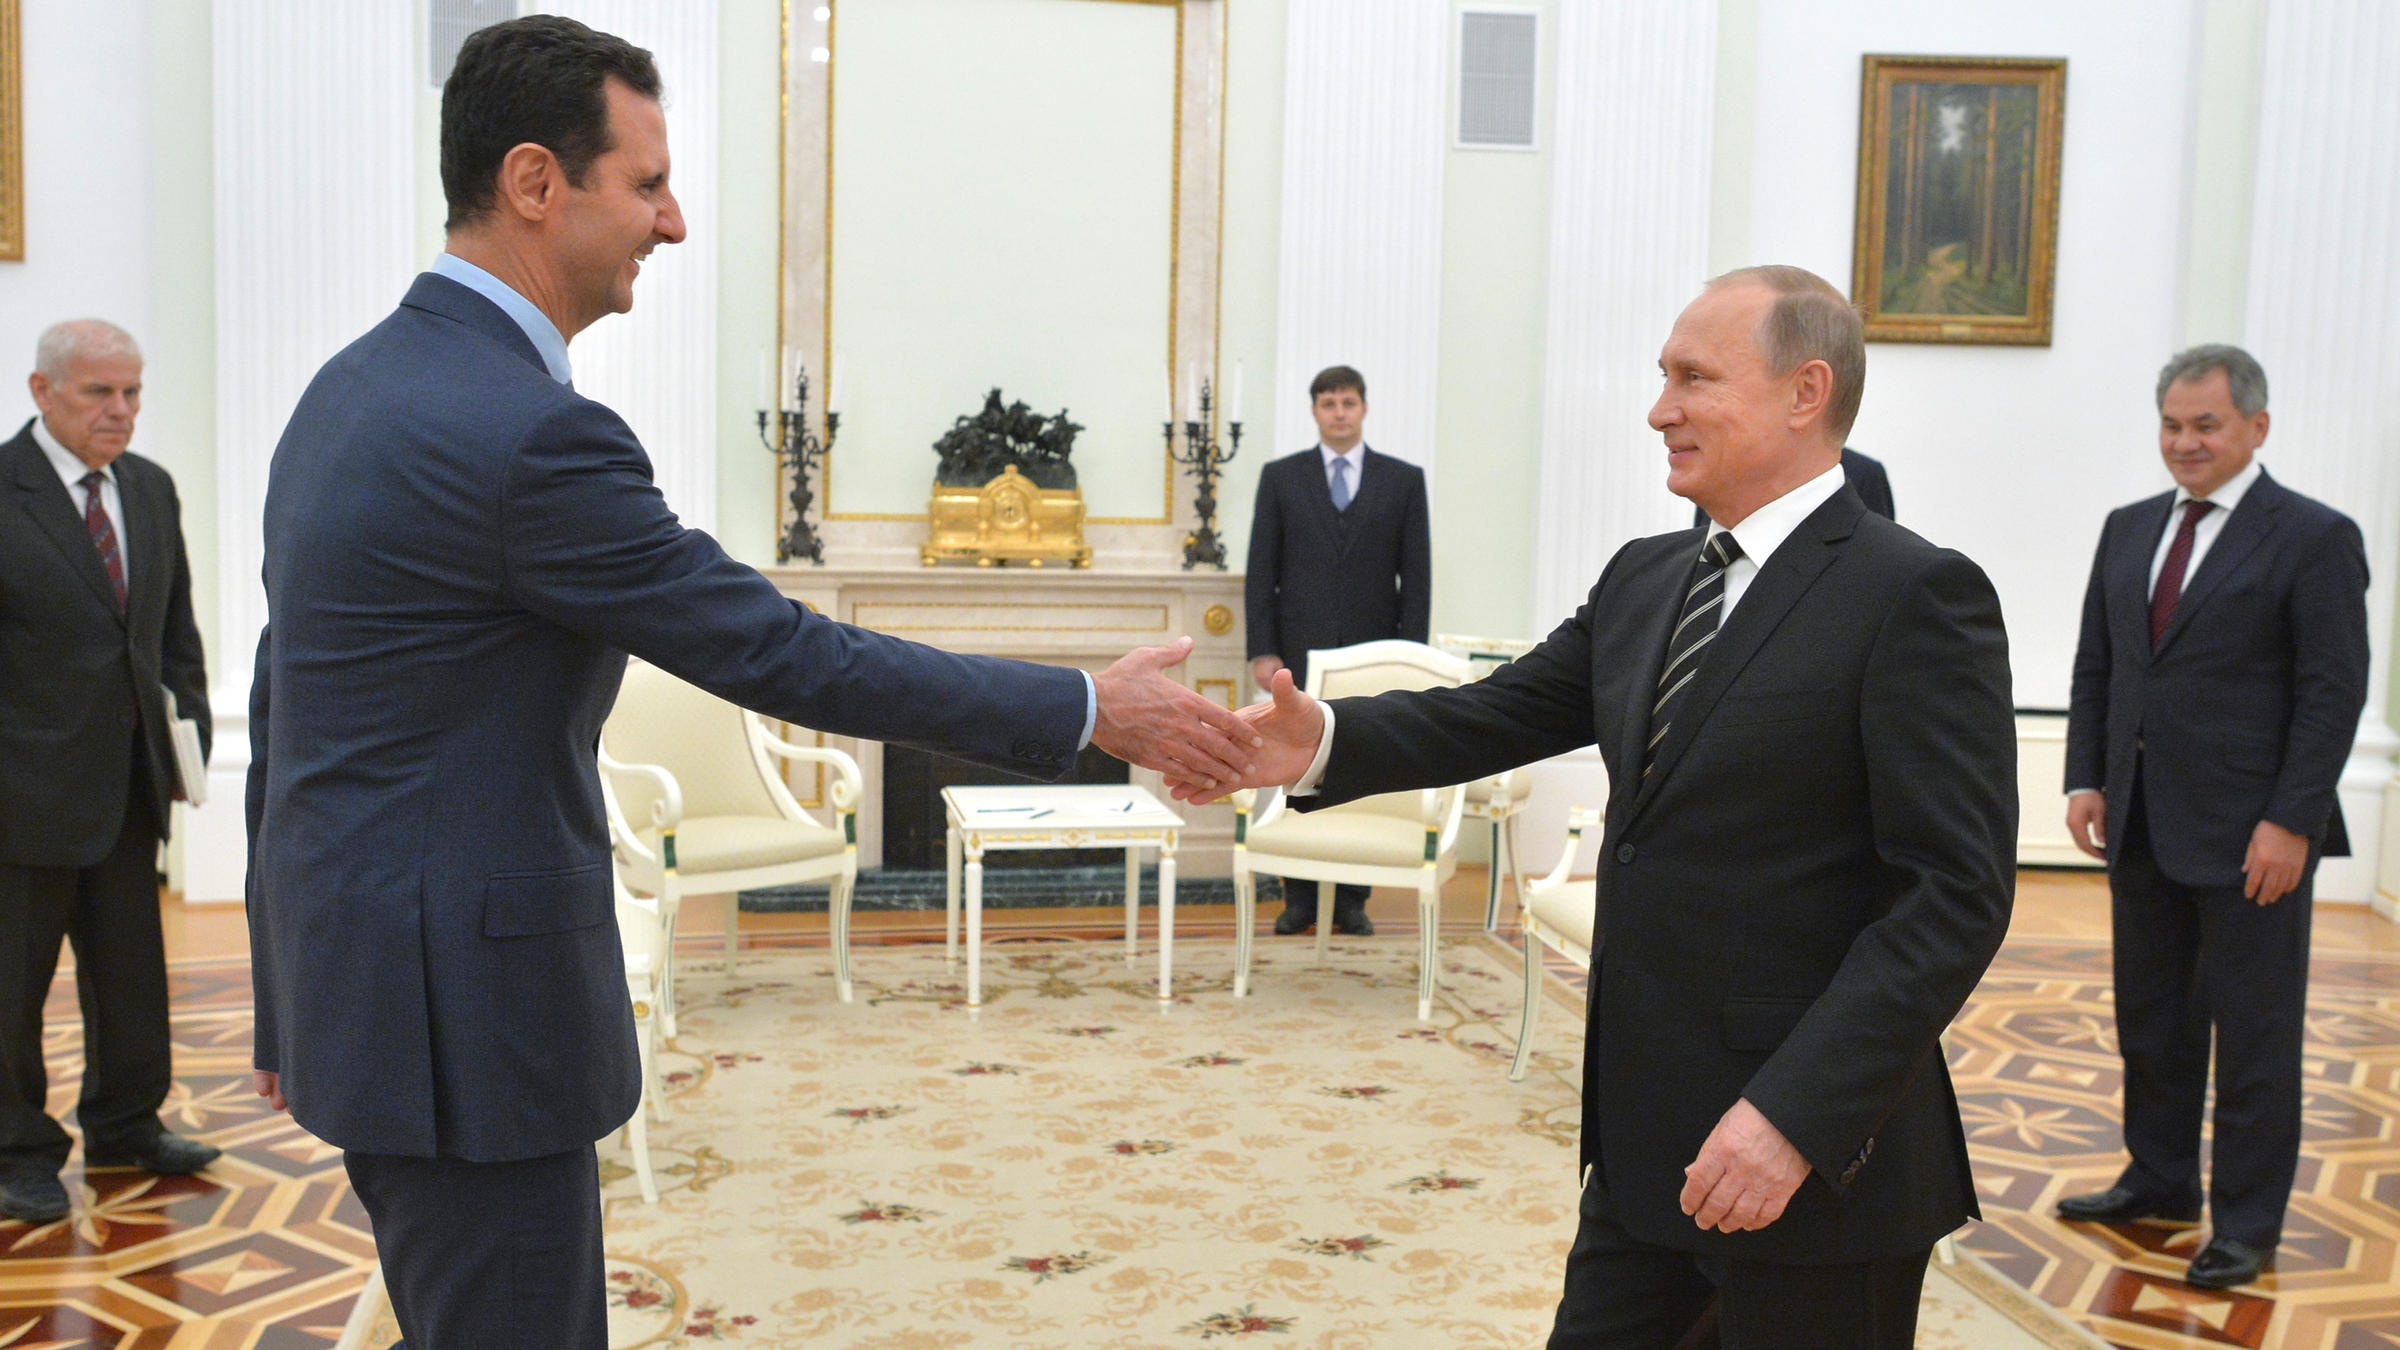 Rescued by russia many are promised few are saved kalw russian president vladimir putin right greets syrian president bashar assad in the kremlin in view slideshow 1 of 3 kristyandbryce Images